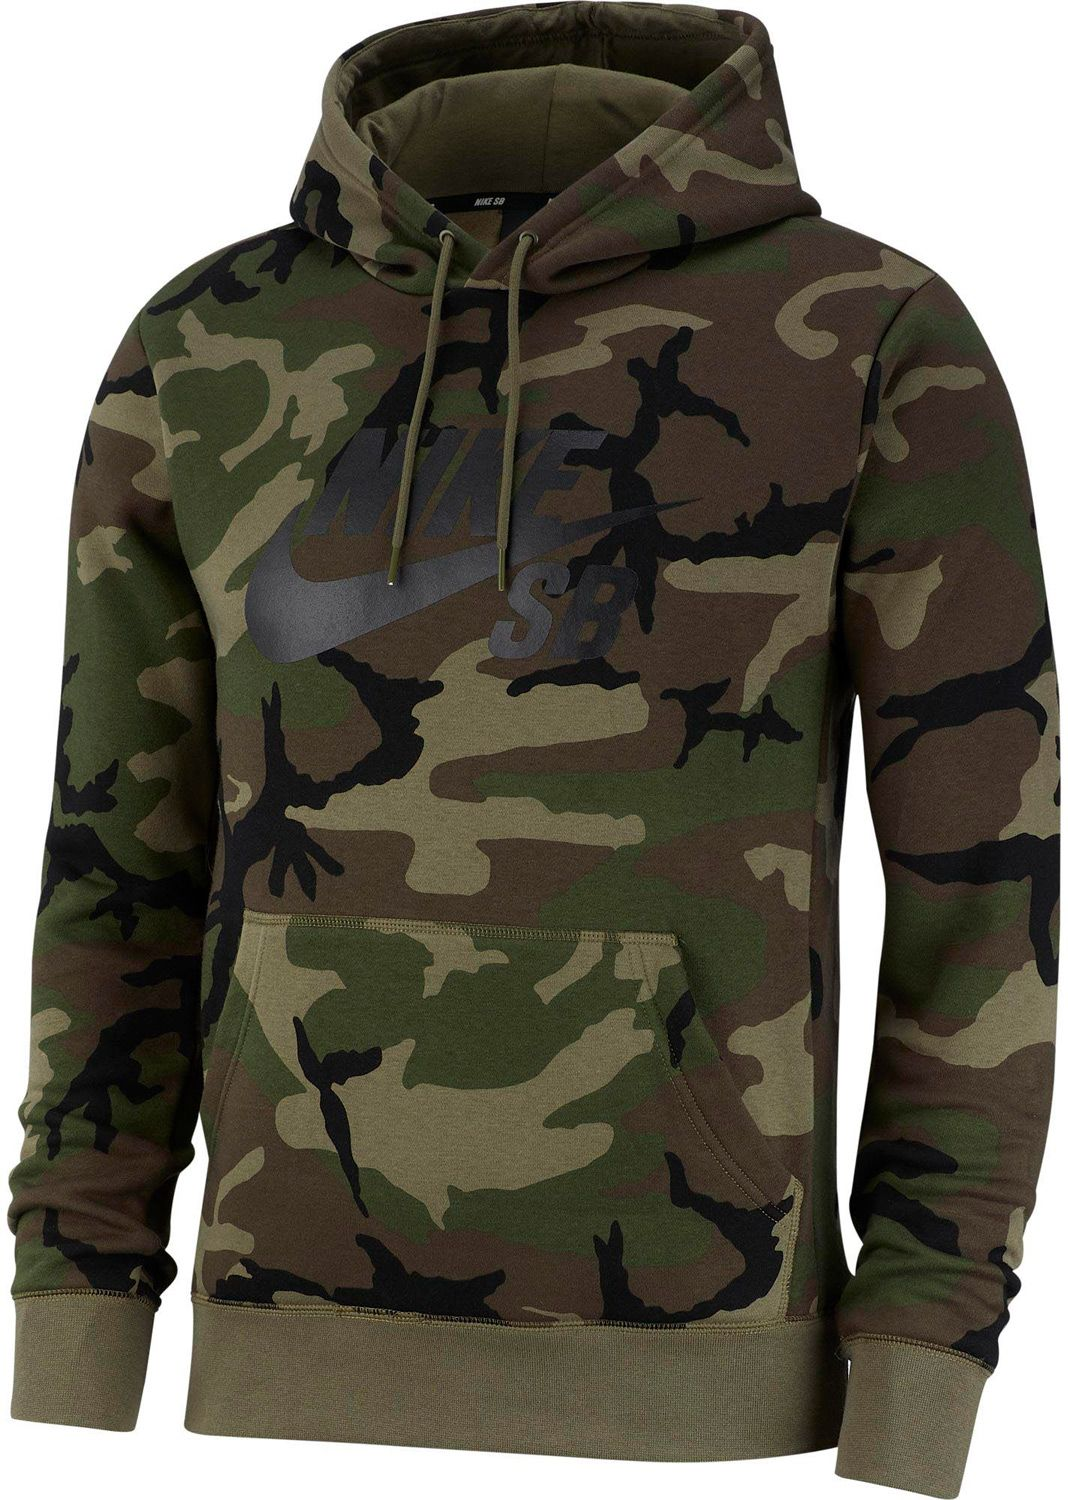 Predownload: Nike Sb Icon Pullover Hoodie Nike Clothes Mens Mens Outfits Designer Jackets For Men [ 1500 x 1068 Pixel ]